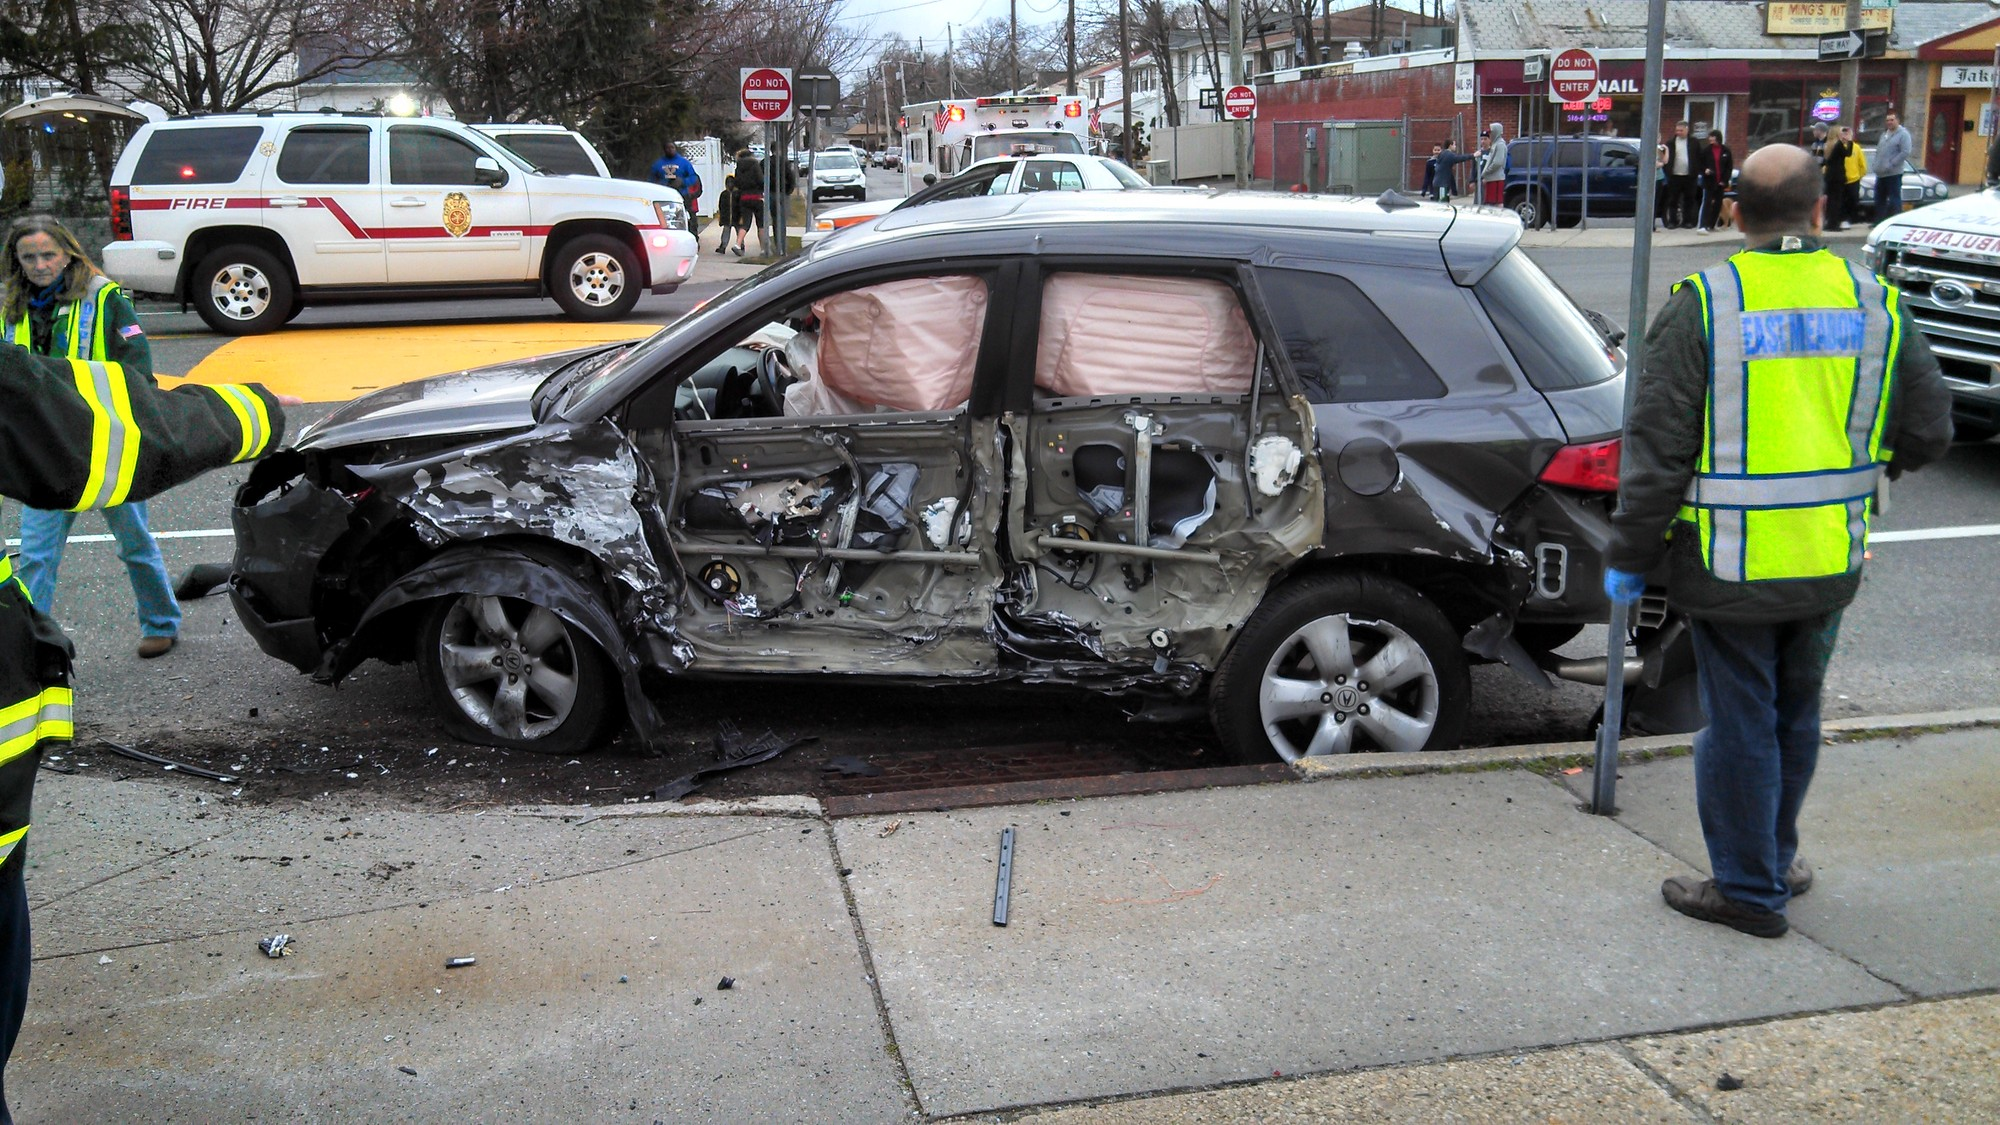 One of the vehicles involved in the accident, which occurred at about 5:30 p.m. on Tuesday.